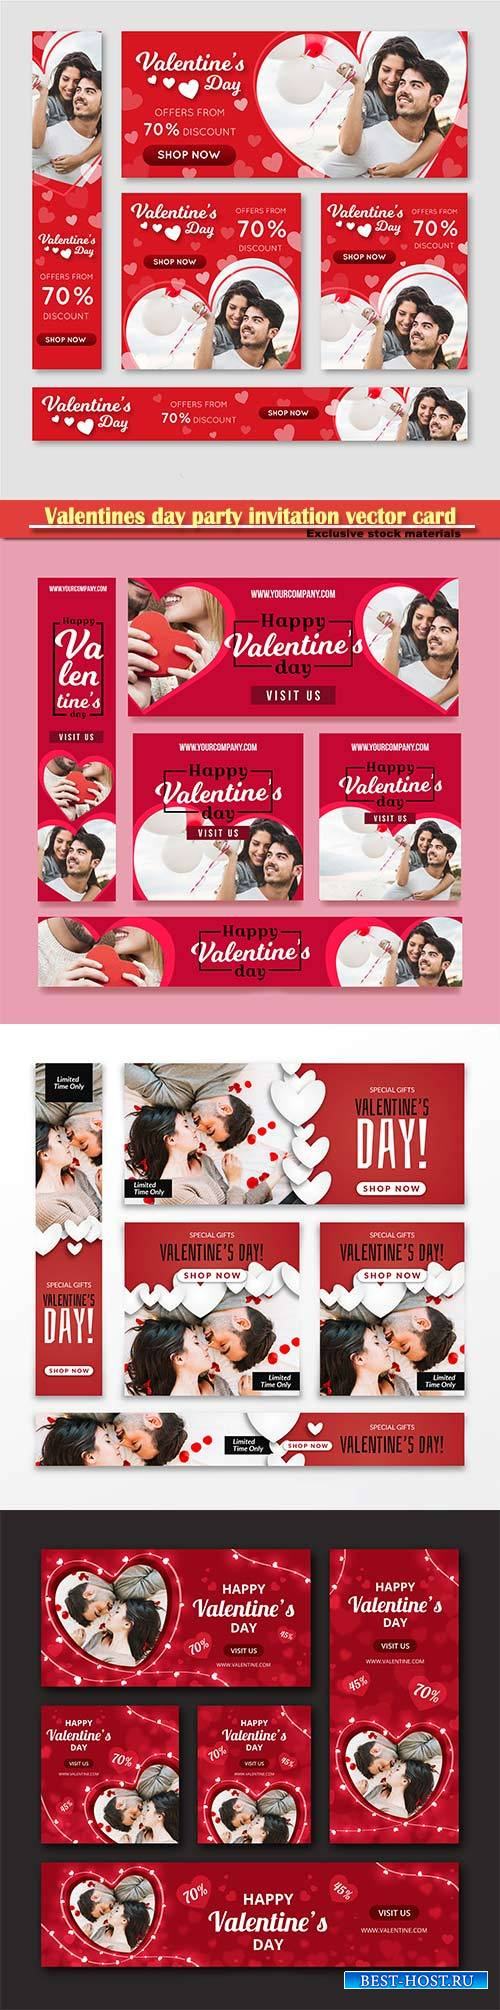 Valentines day party invitation vector card # 53